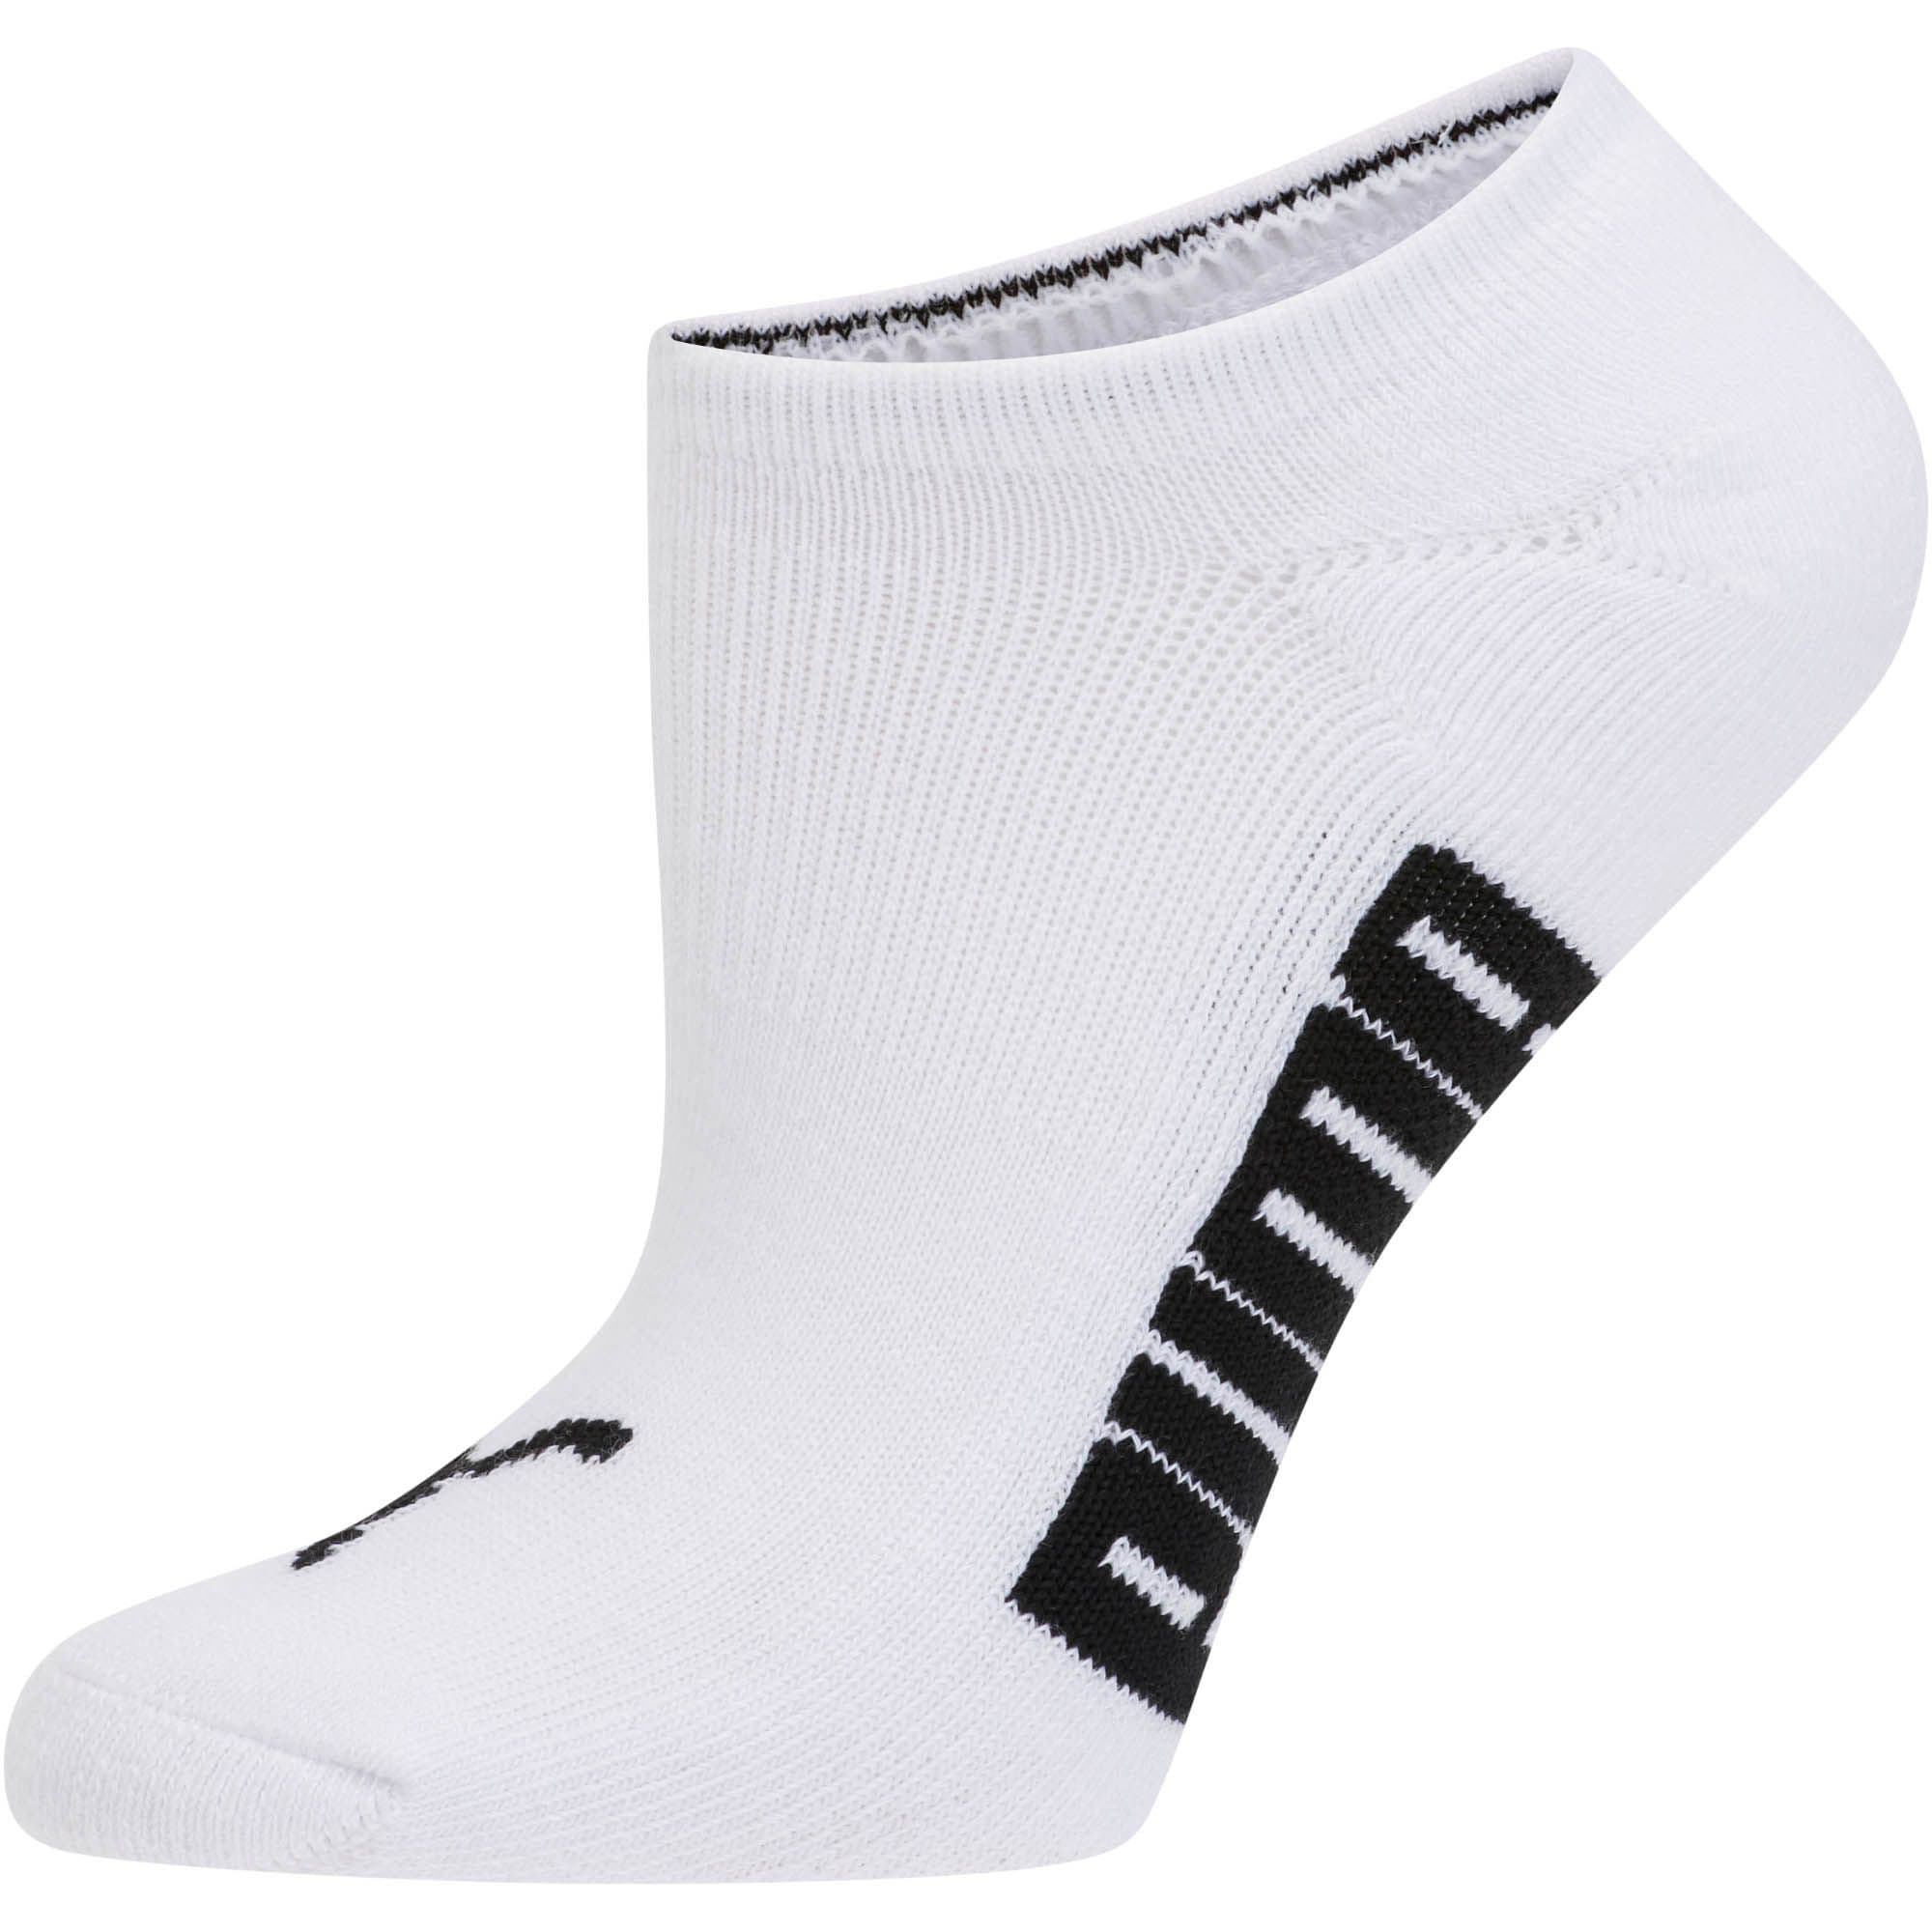 Thumbnail 4 of Women's Invisible No Show Socks (3 Pack), white-black-light heather gr, medium